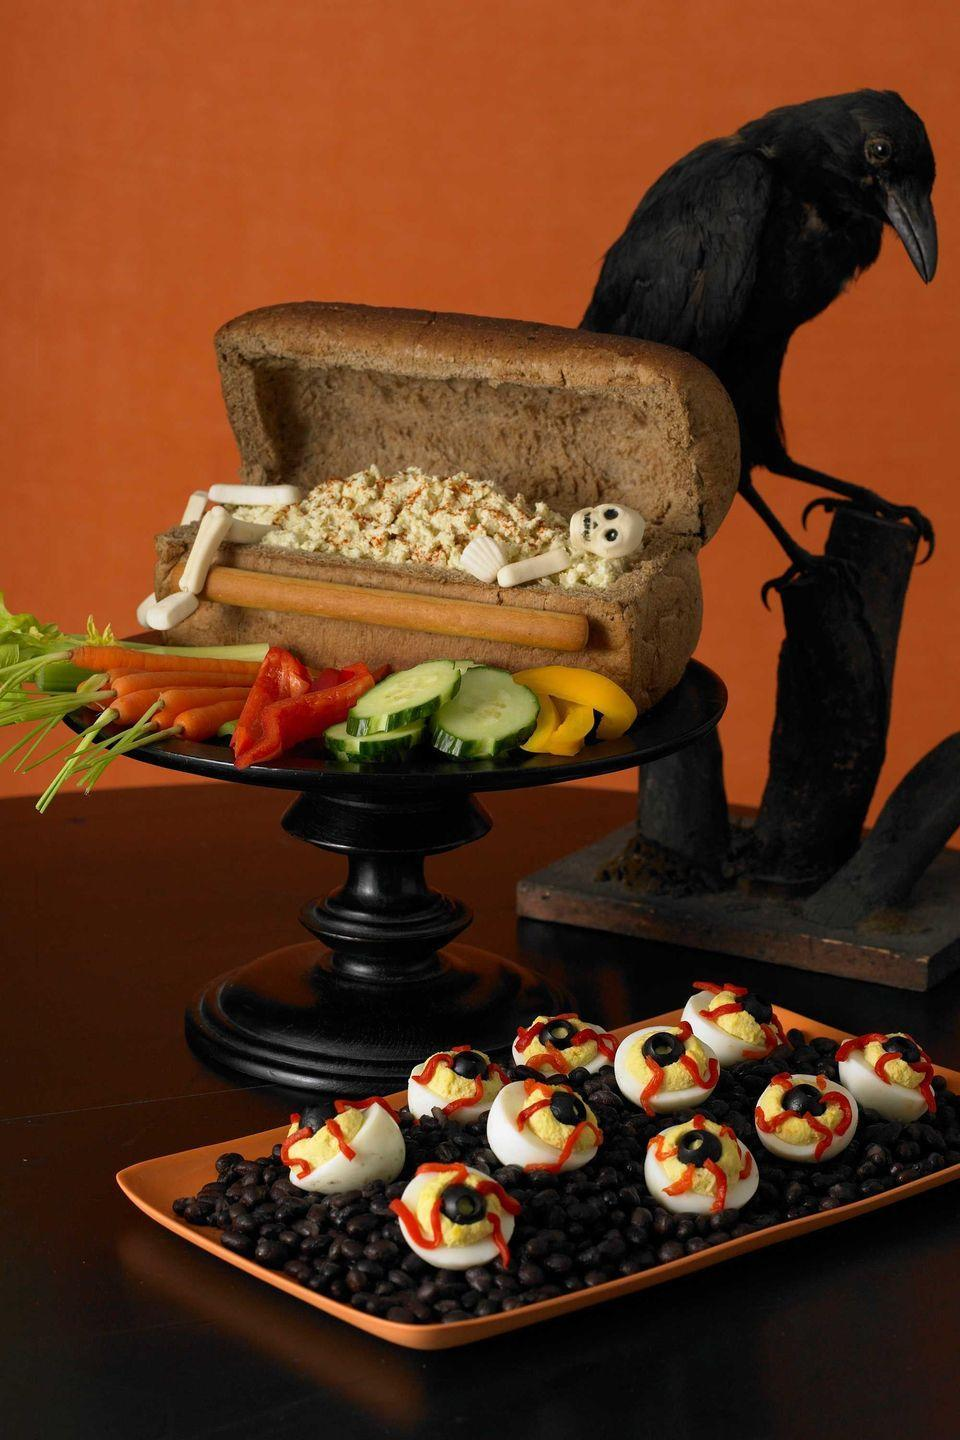 """<p>With black olive slices for pupils and thinly sliced pimiento for veins, these deviled eggs are truly, well, devilish.</p><p><strong><em><a href=""""https://www.womansday.com/food-recipes/food-drinks/recipes/a10067/bloodshot-deviled-eyeballs-recipe-121384/"""" rel=""""nofollow noopener"""" target=""""_blank"""" data-ylk=""""slk:Get the Bloodshot Deviled Eggs recipe."""" class=""""link rapid-noclick-resp"""">Get the Bloodshot Deviled Eggs recipe. </a></em></strong></p>"""